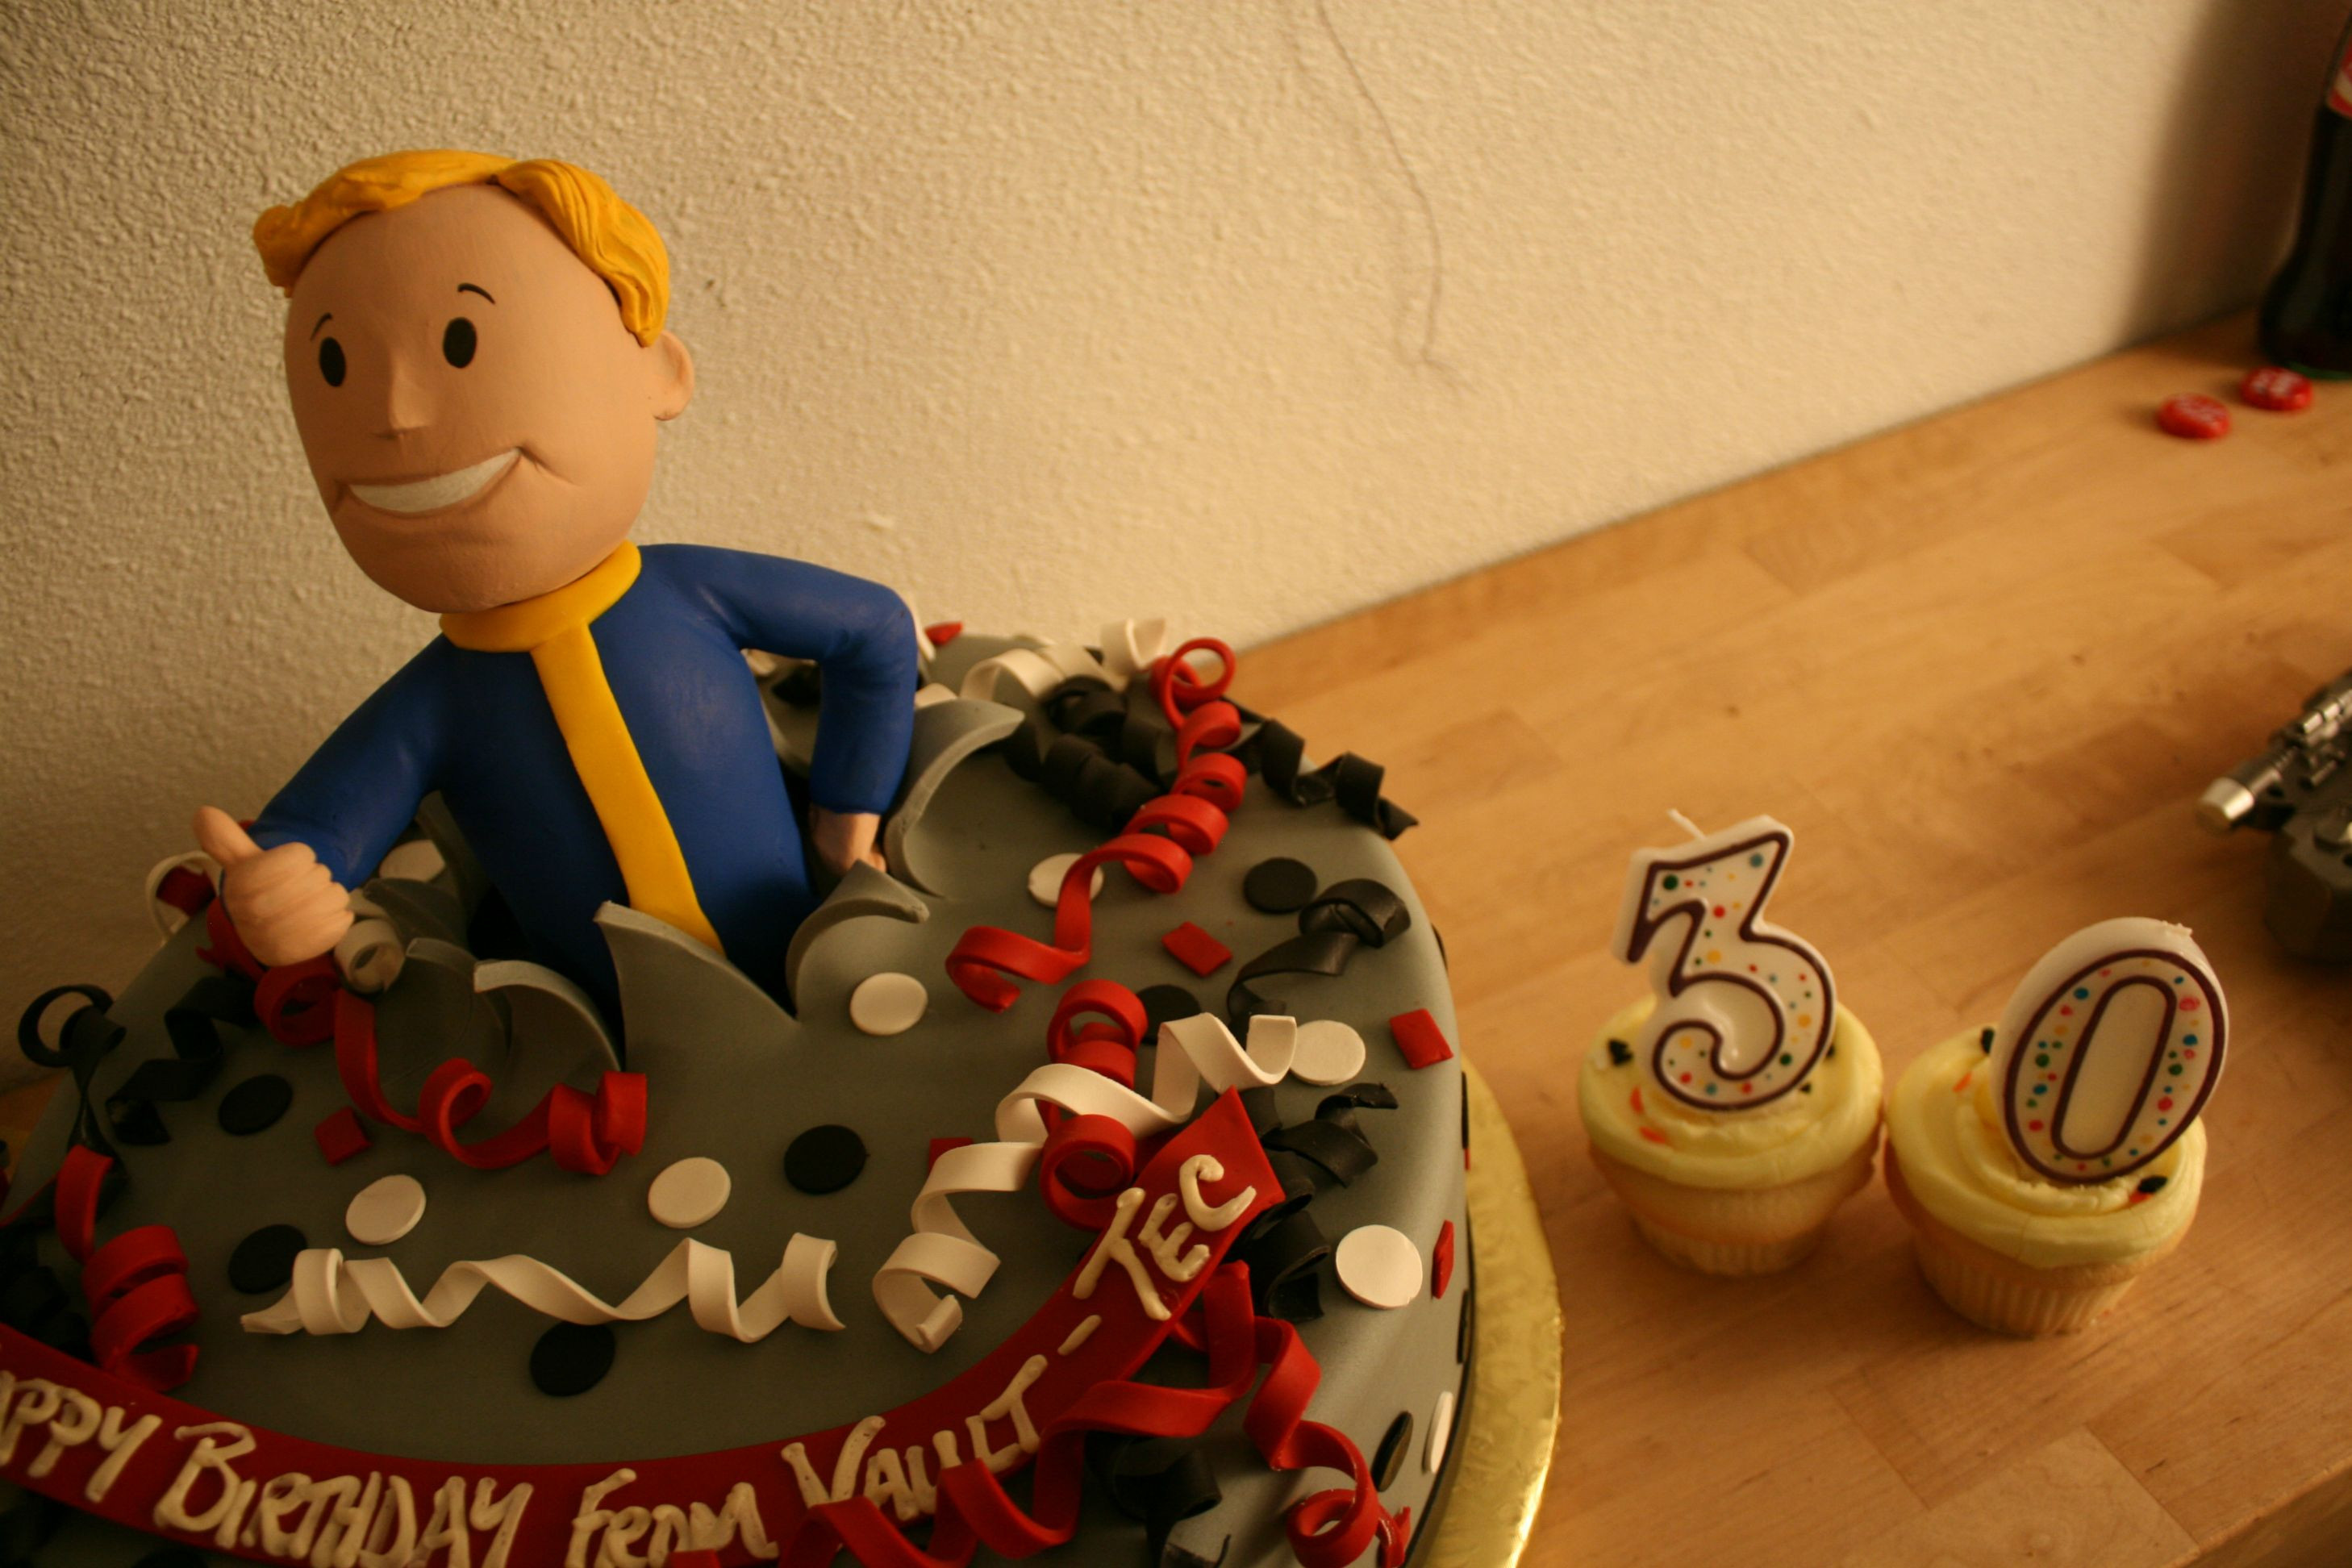 Fallout Birthday Cake  Man Turns Basement Into Fallout Vault For Birthday Party